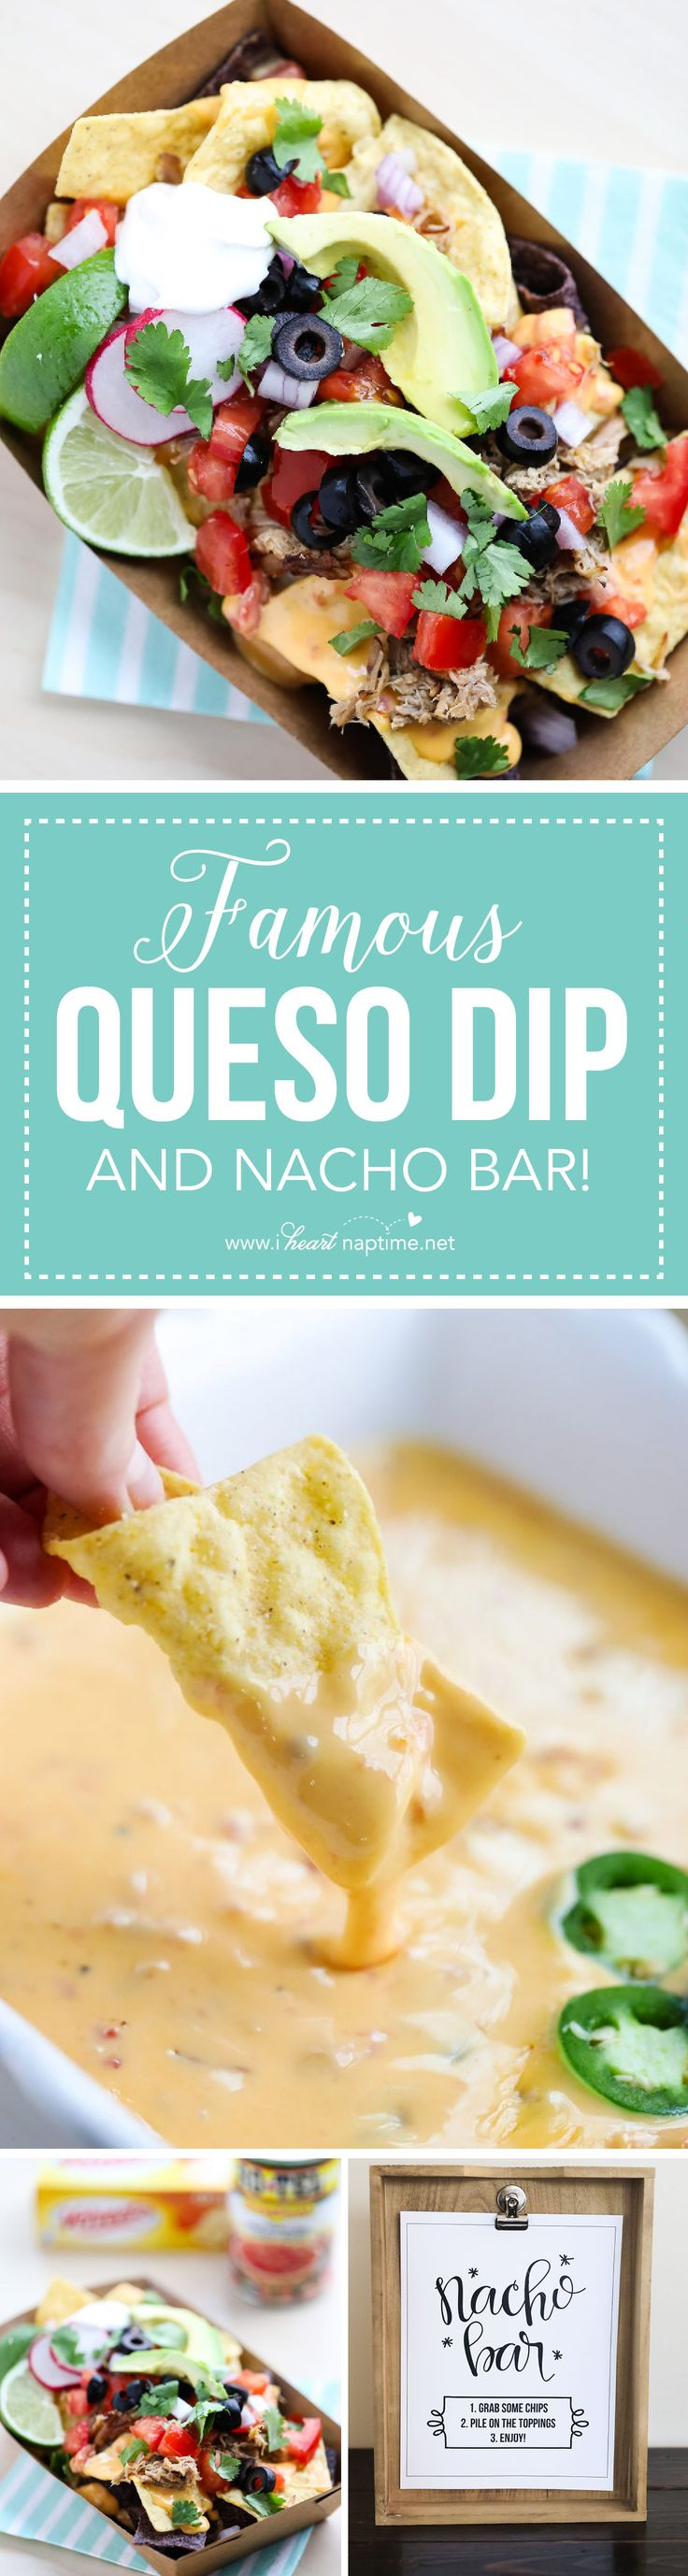 Nacho Bar free printables + Famous Queso Dip Recipe and all the fix-in's! The perfect game day appetizer. #FamousQuesoHouse #Ad